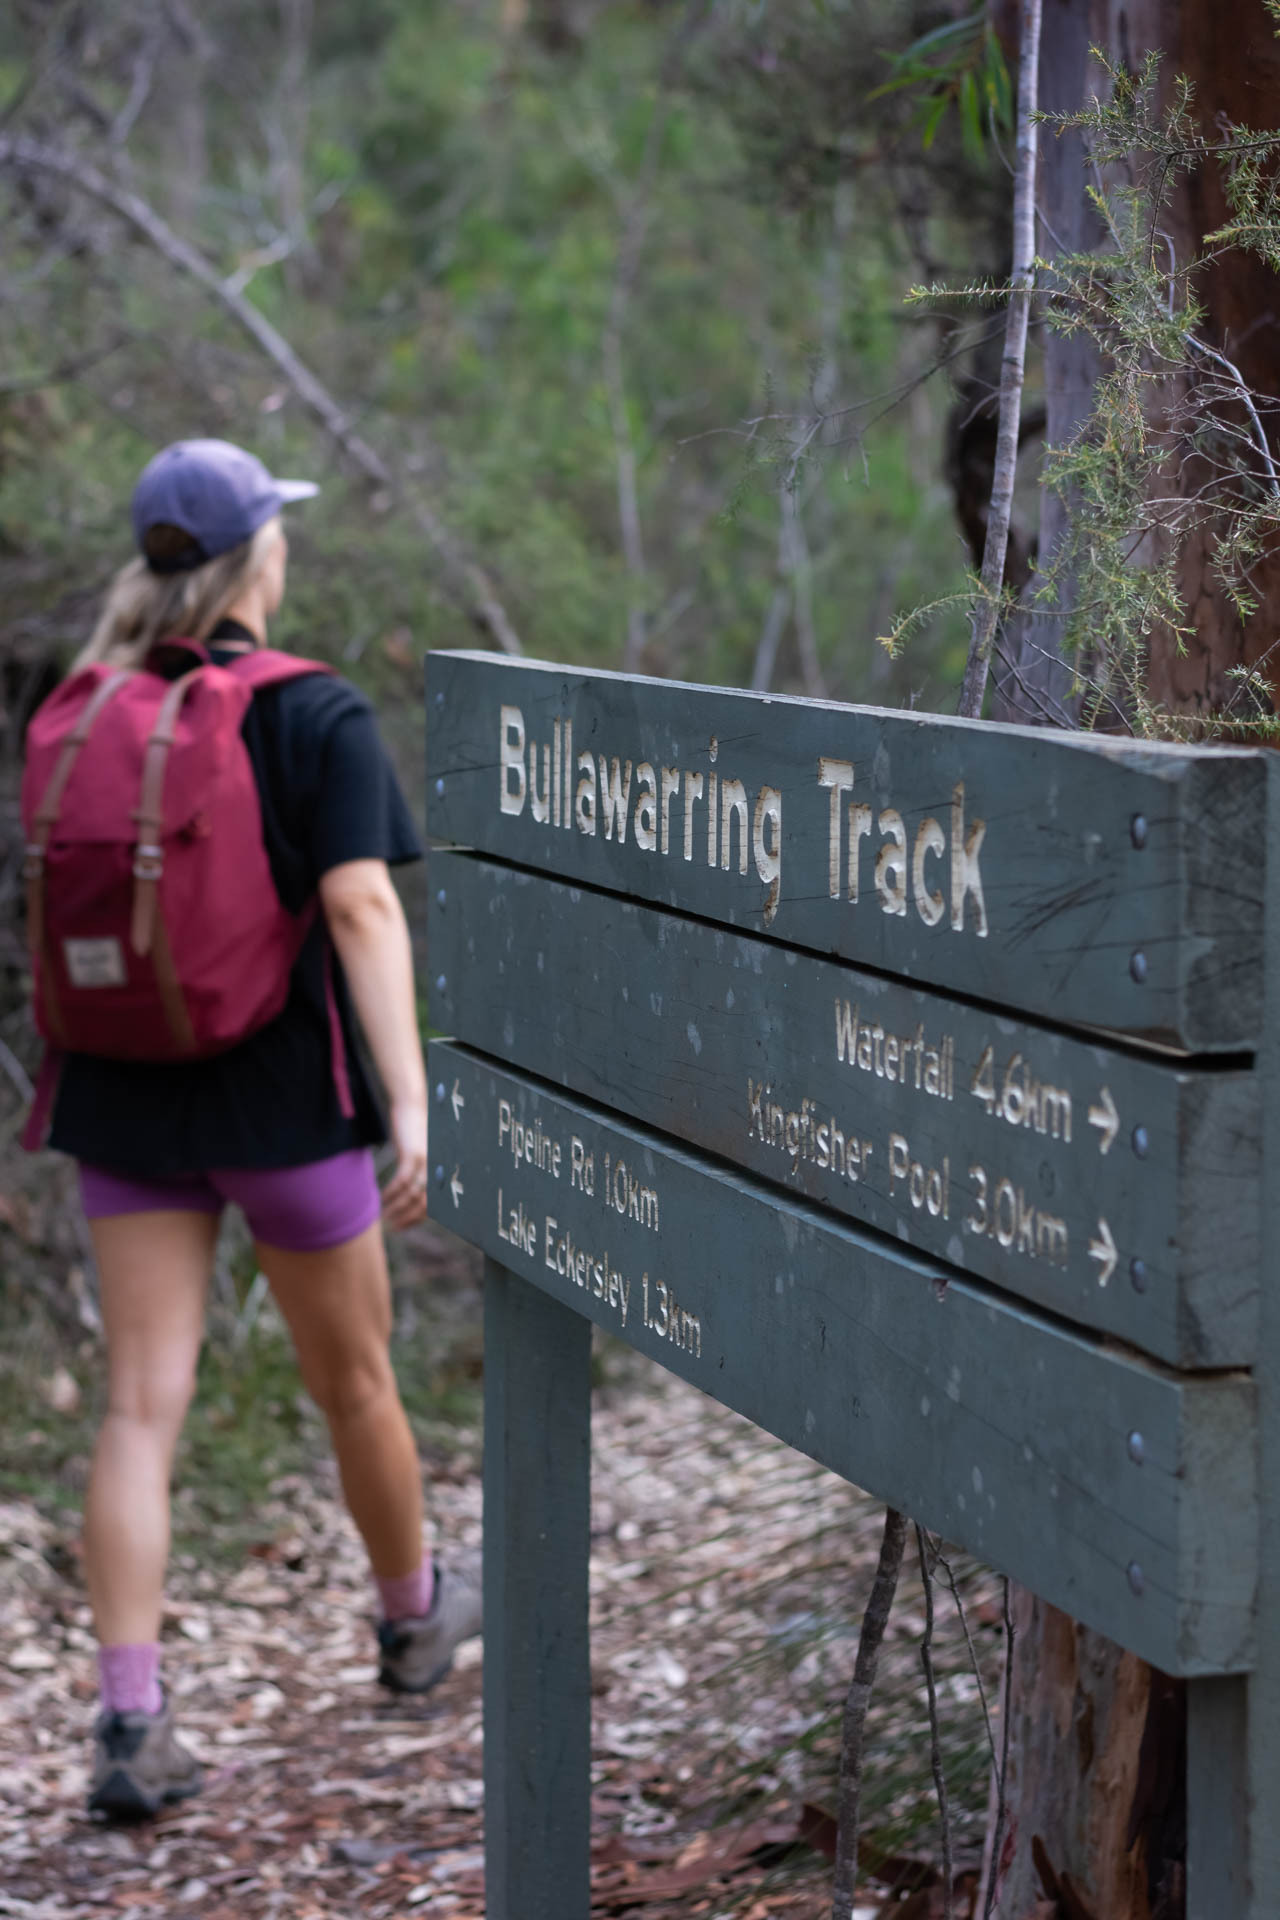 Is AllTrails Pro a Hiking App Worth Paying For?, Photos by Matt Pearce, Bullawarring track, heathcote national park, nsw, hikes near sydney